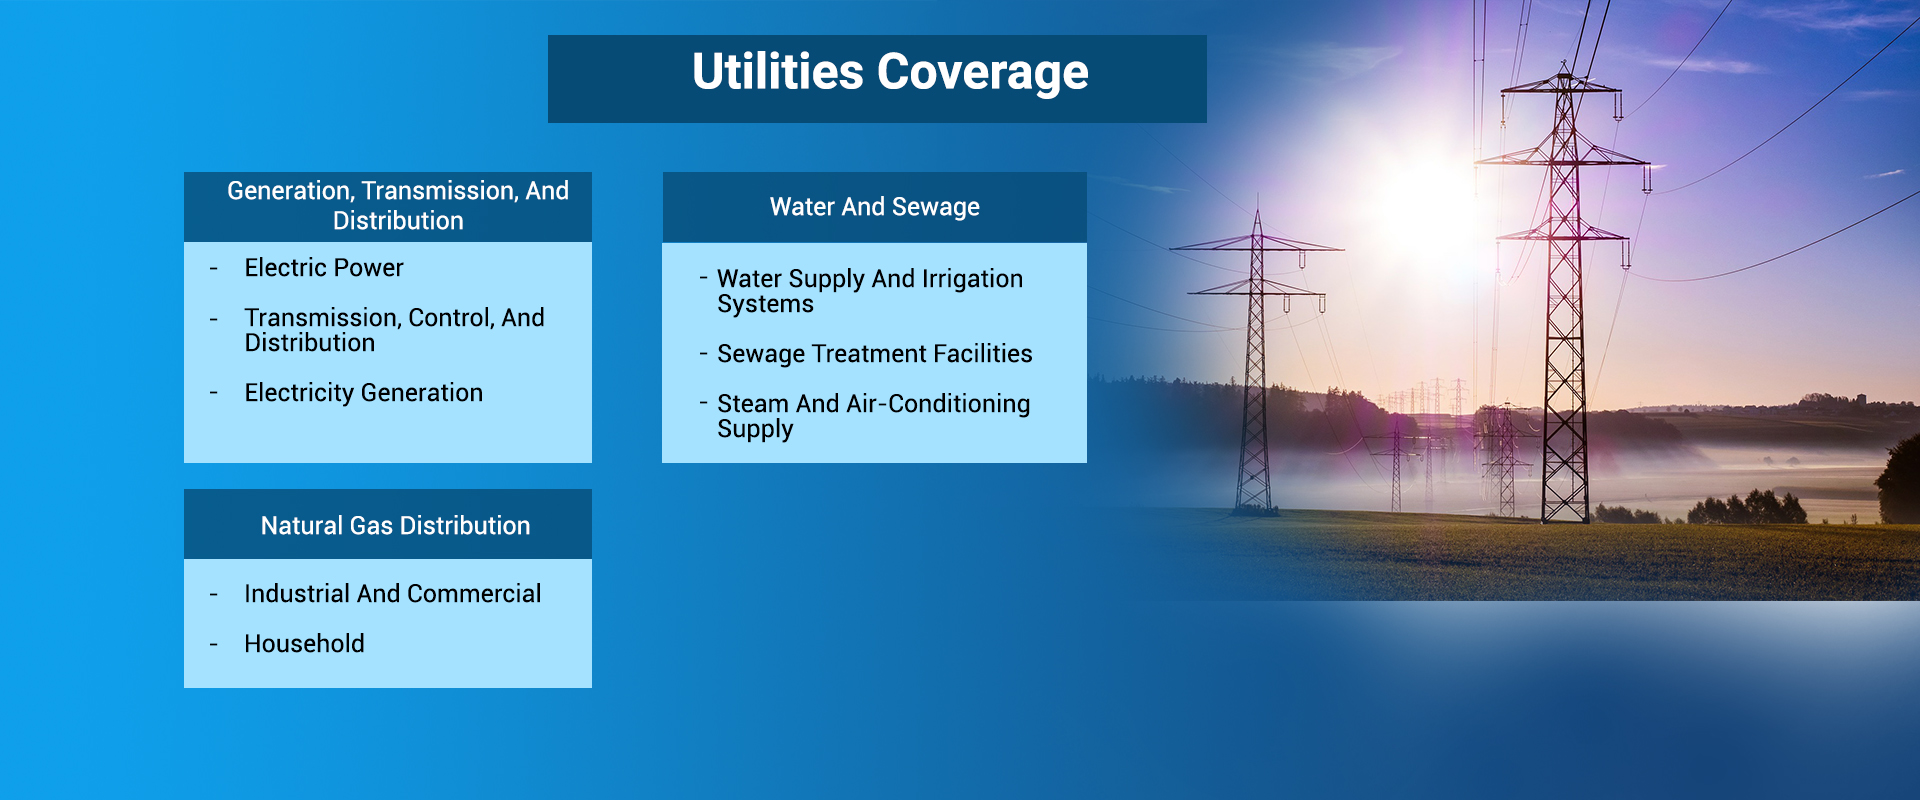 Utilities Coverage